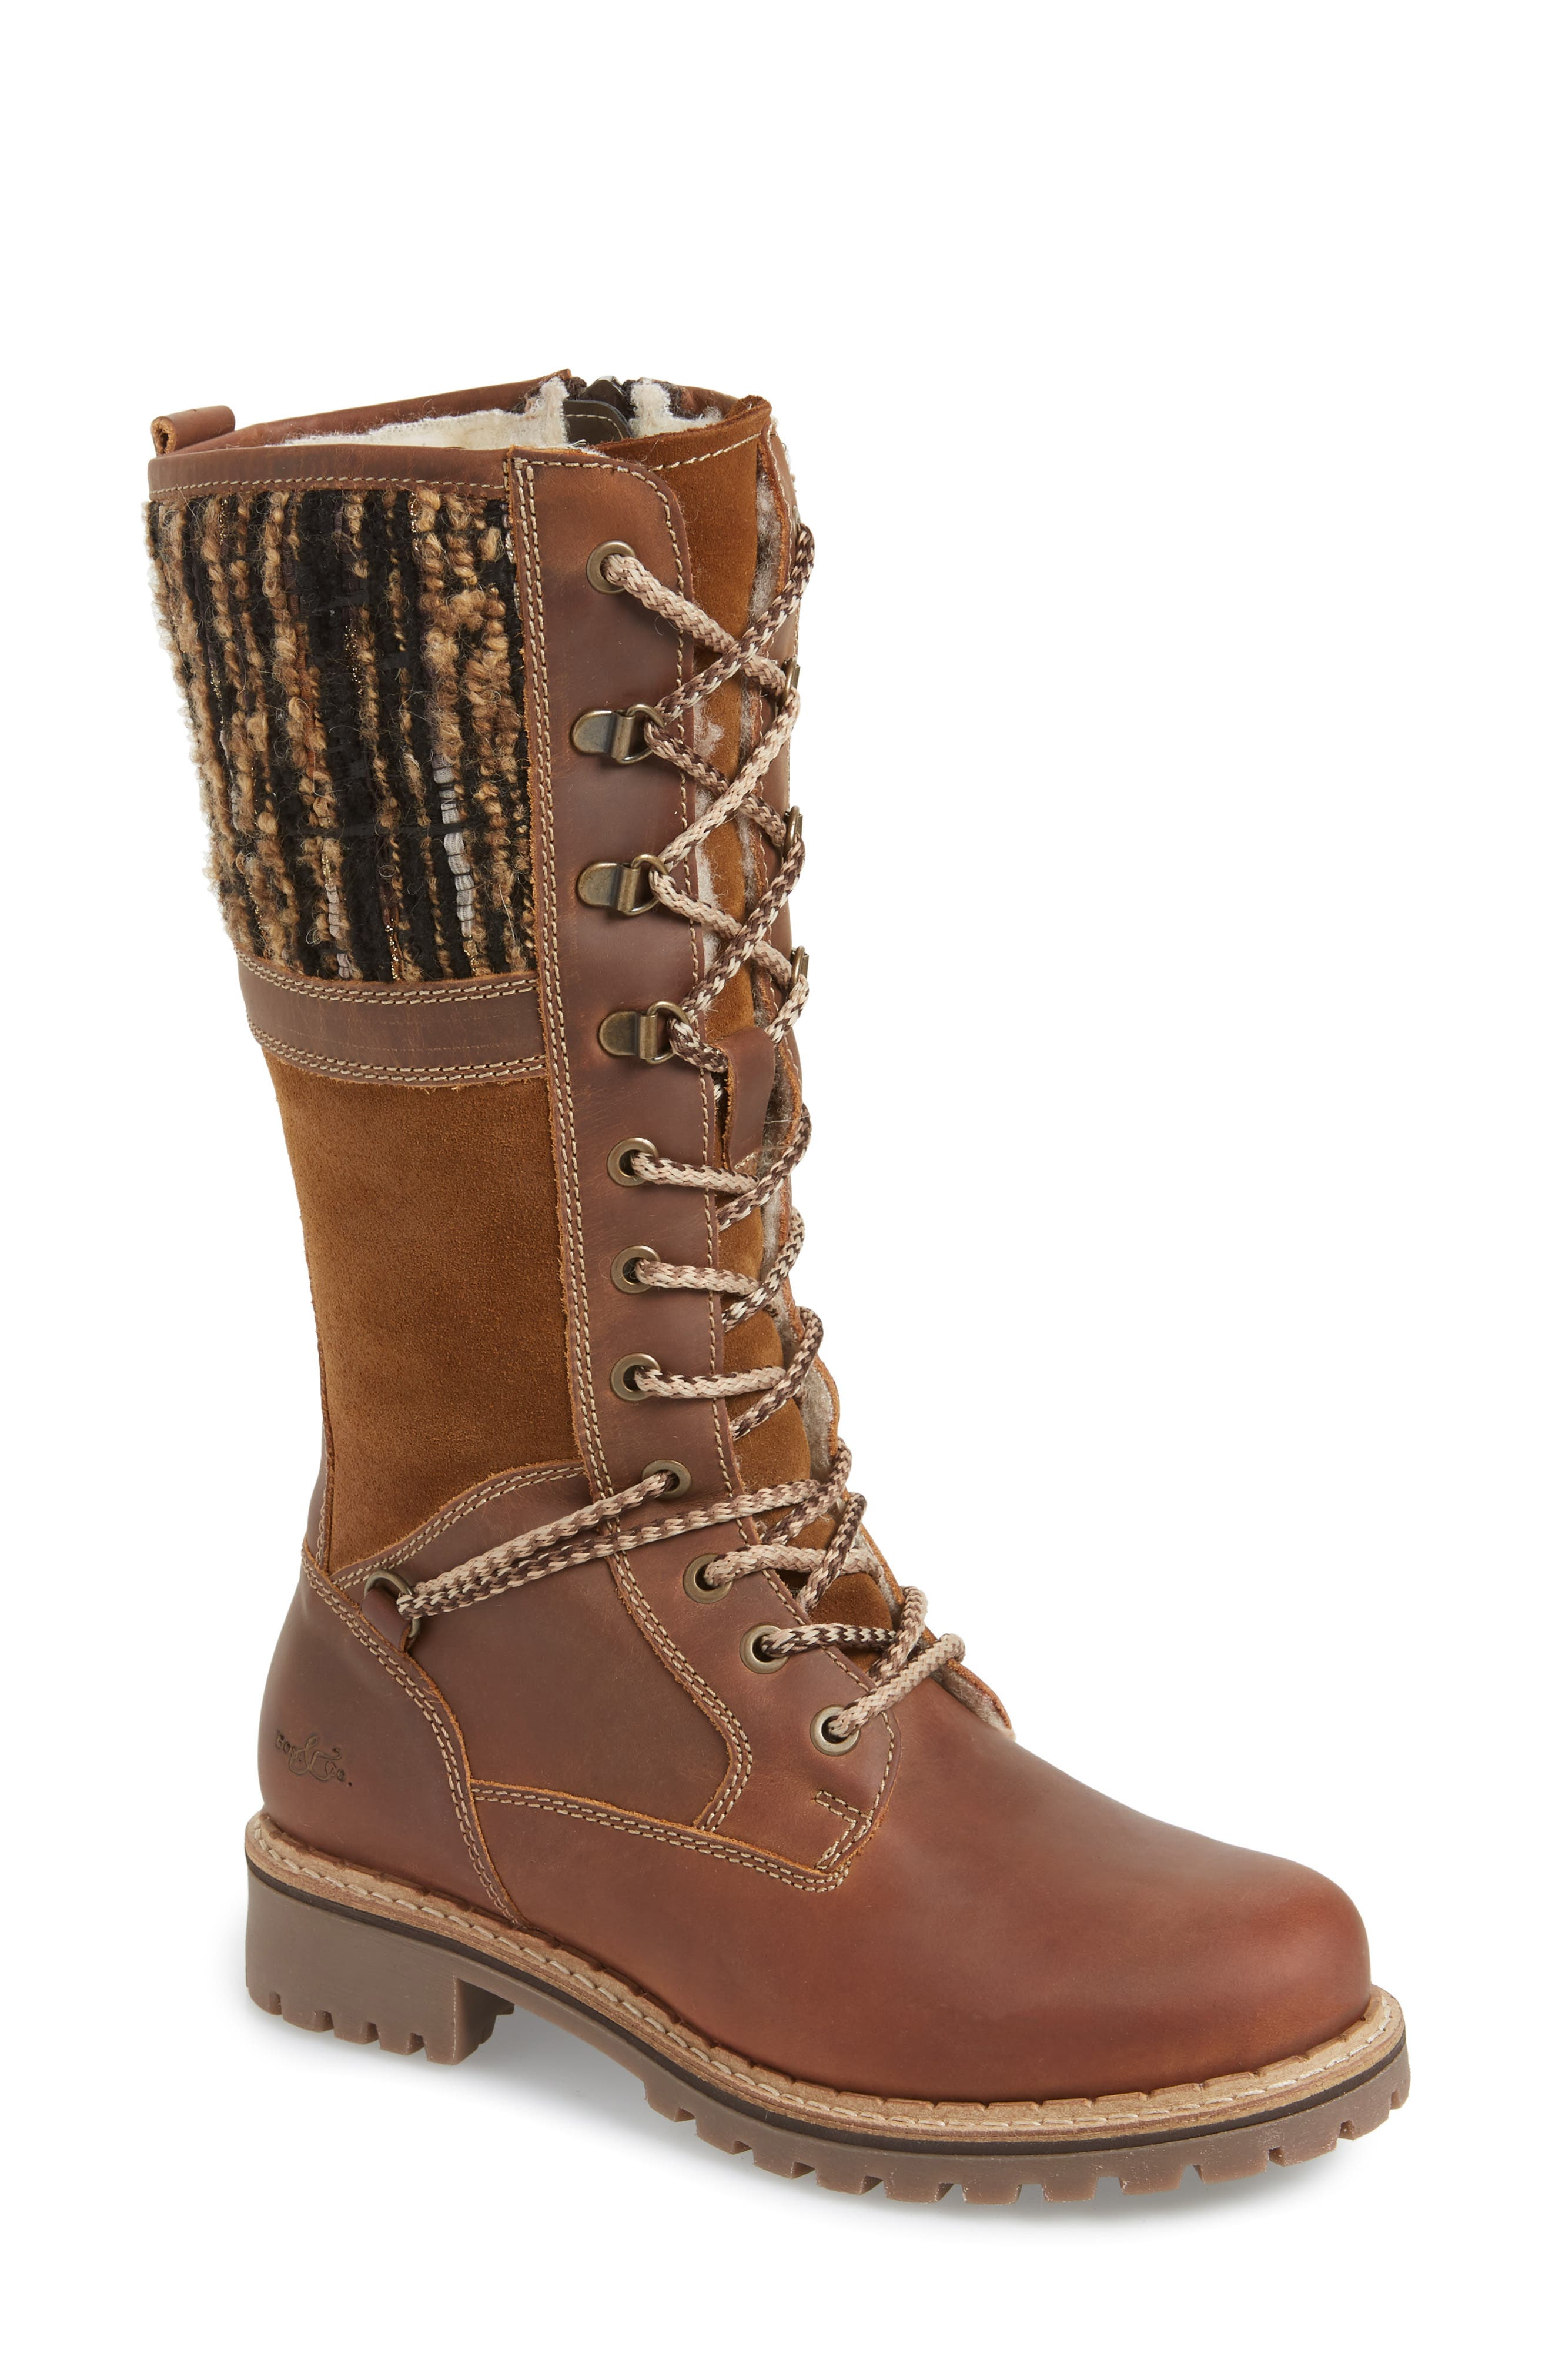 Bos Amp Co Women S Boots